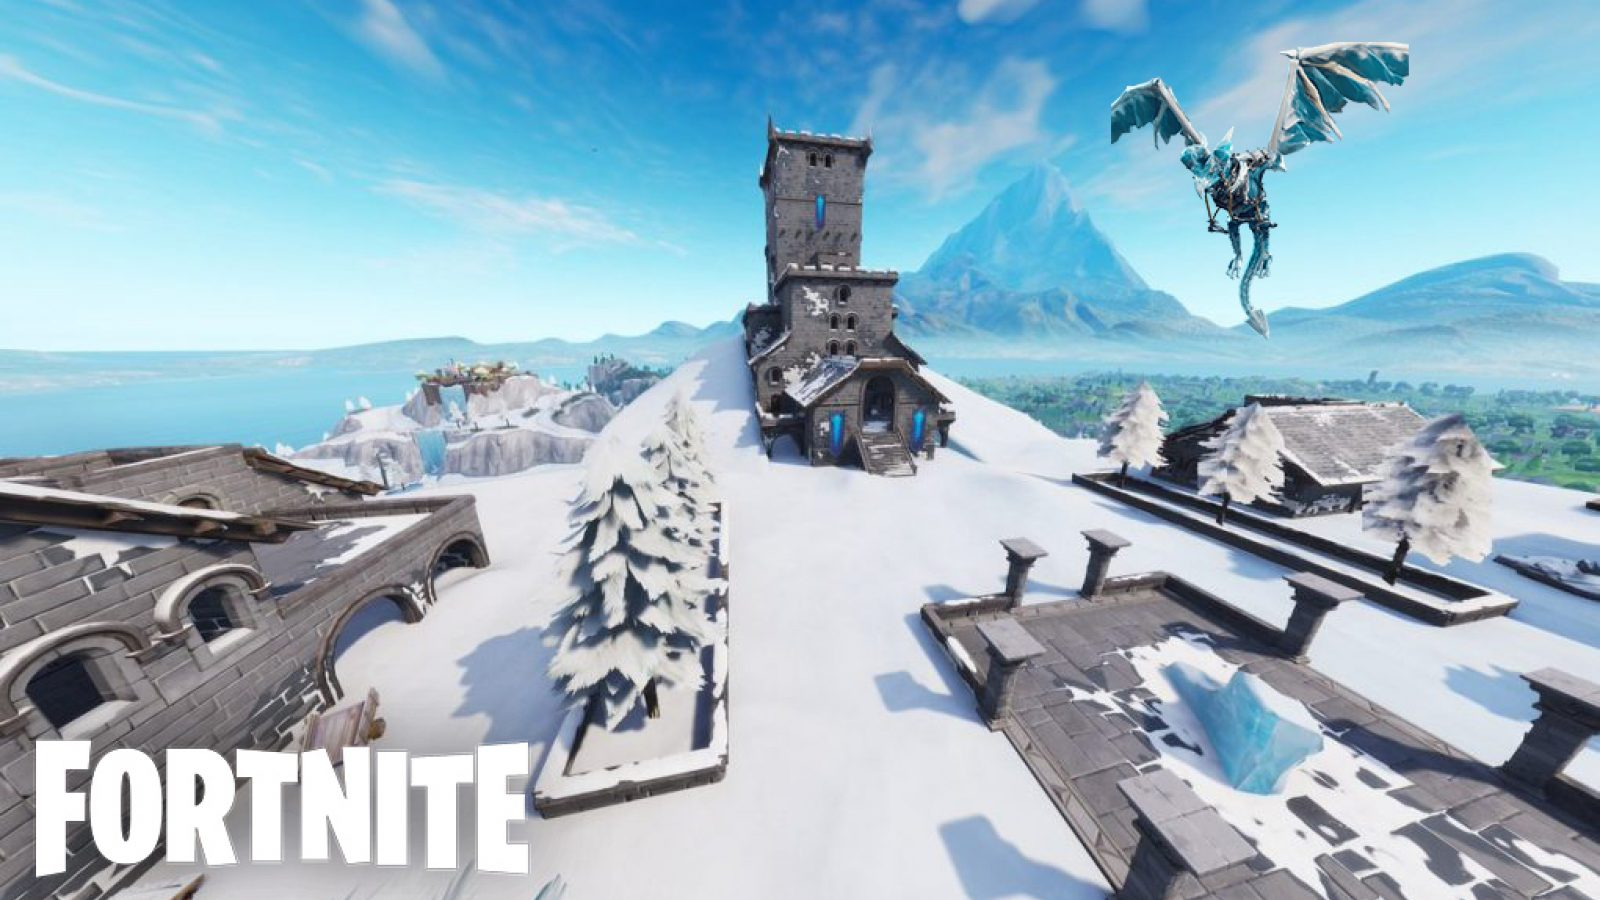 Fortnite V9 20 Map Changes Greasy Grove Polar Peak And More